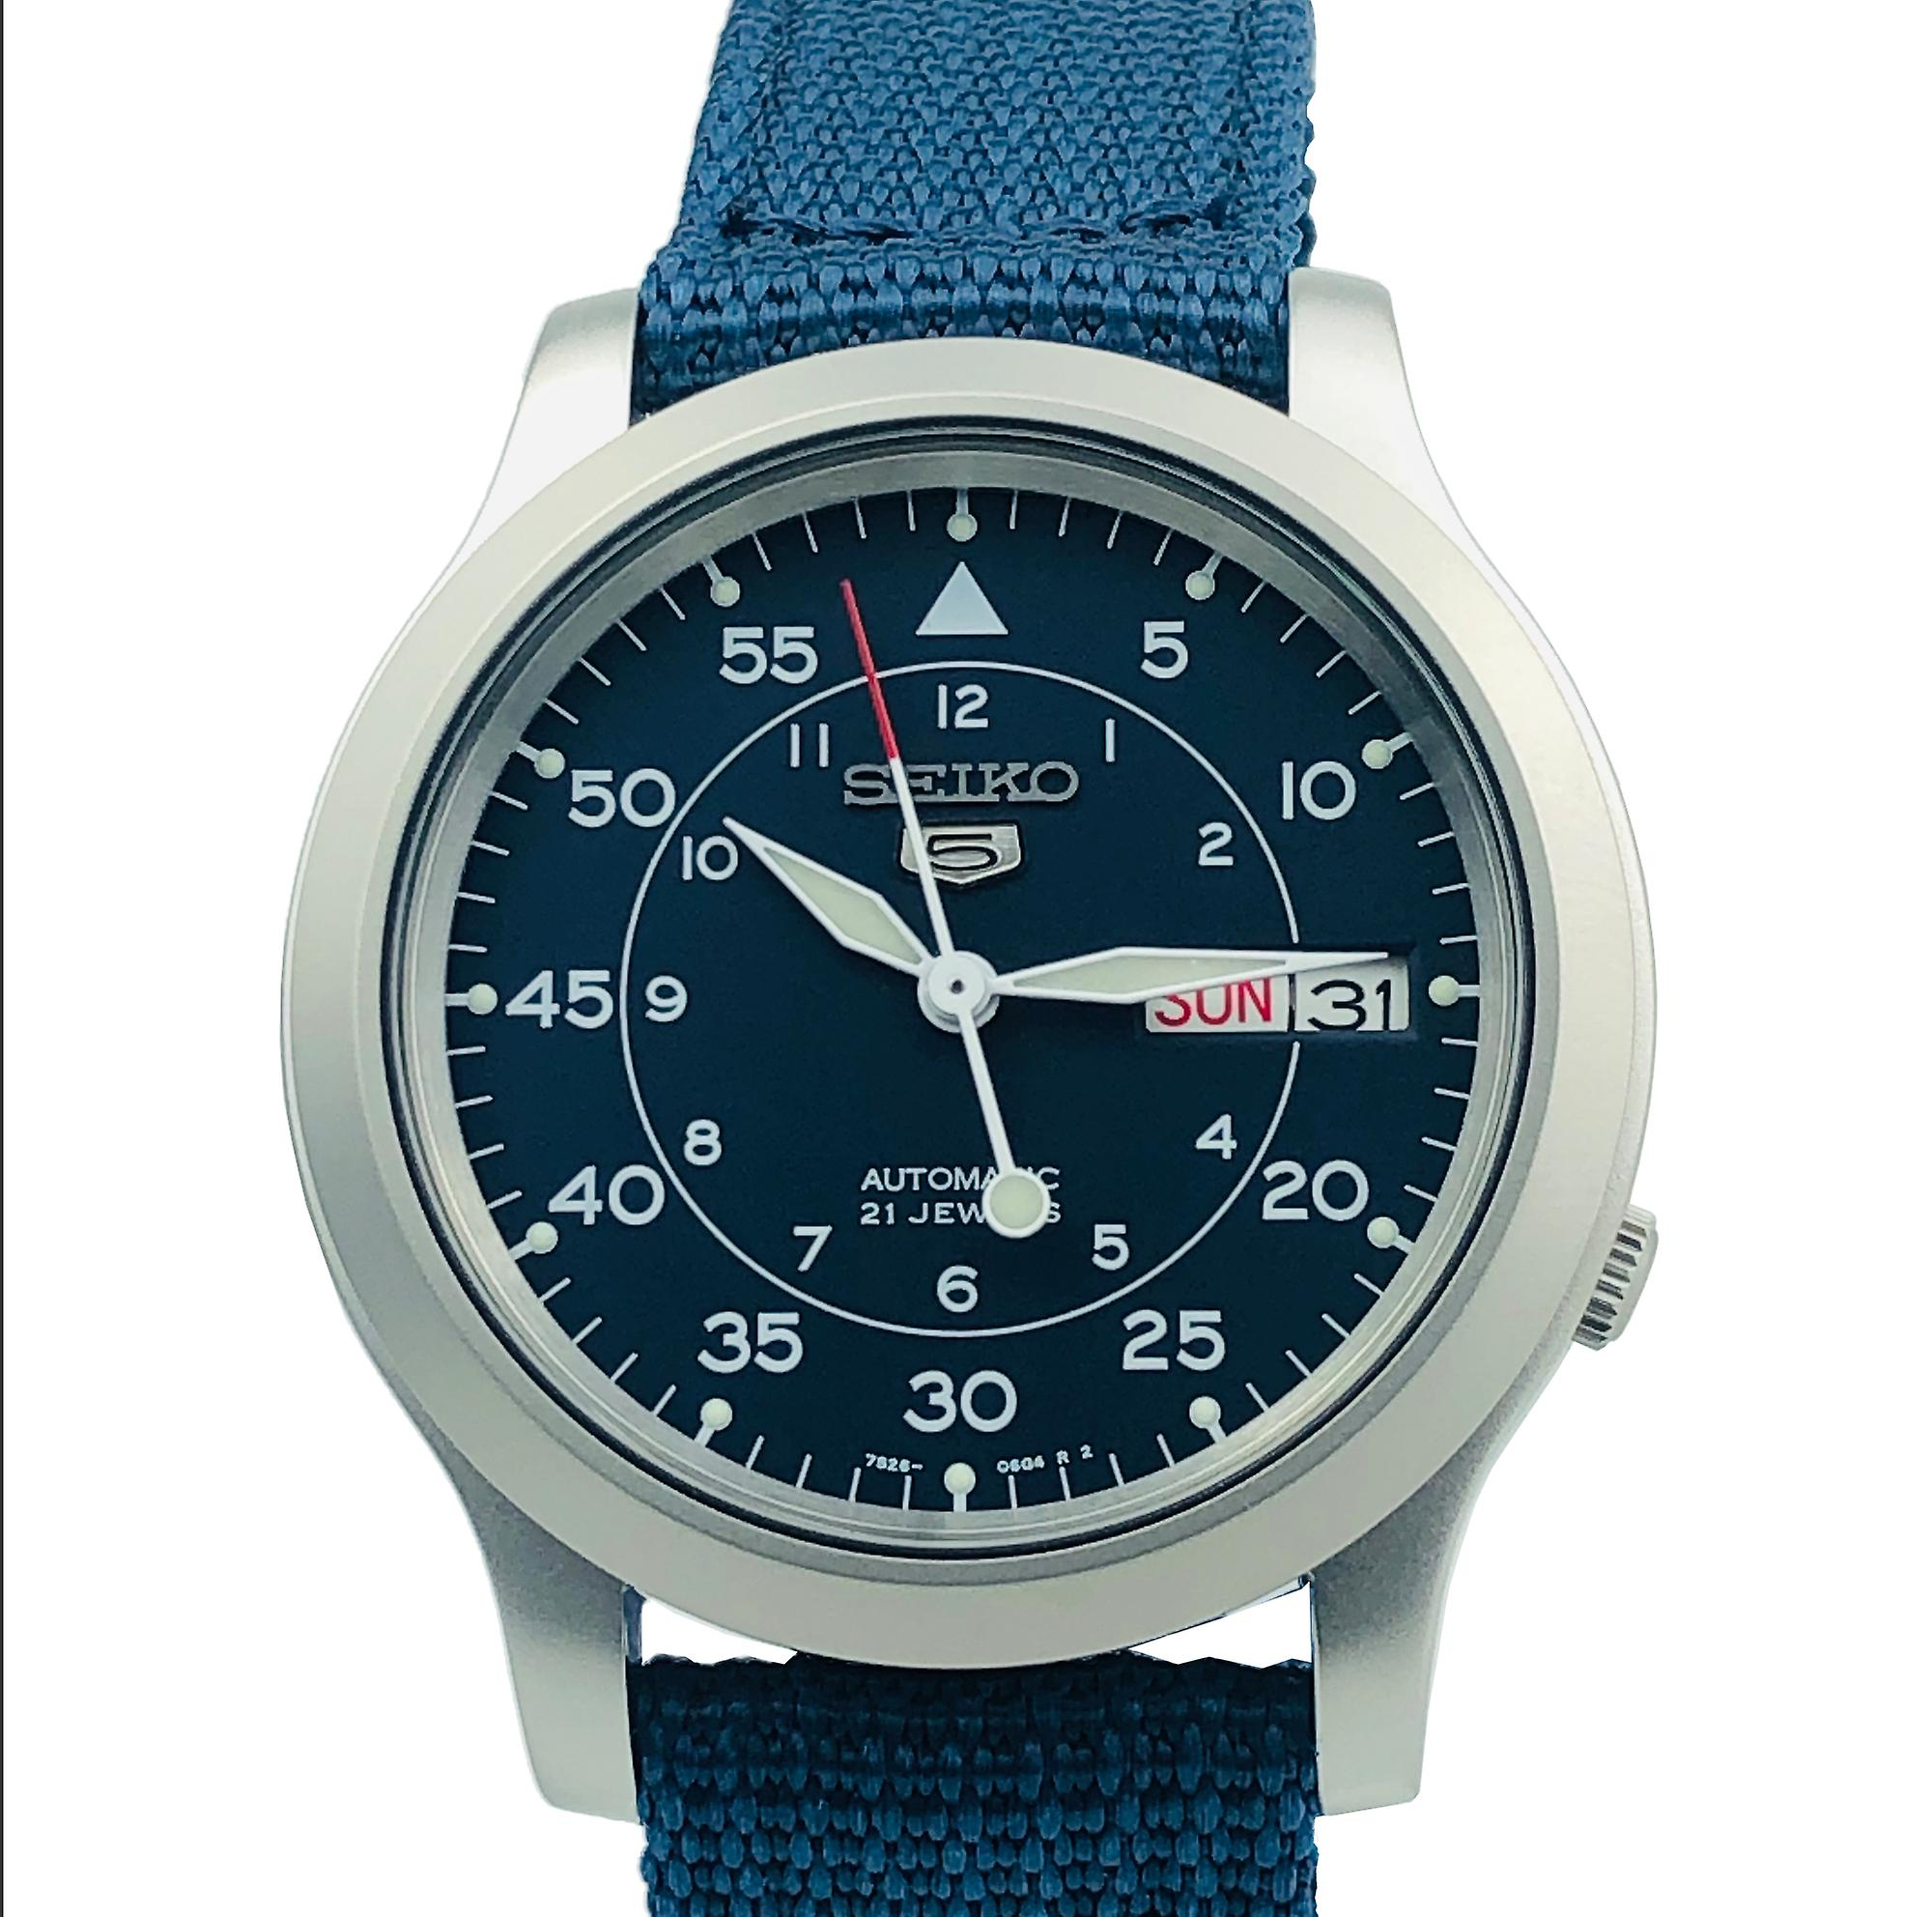 Seiko 5 Automatic Blue Dial Military Style NATO Canvas Strap Mens Watch